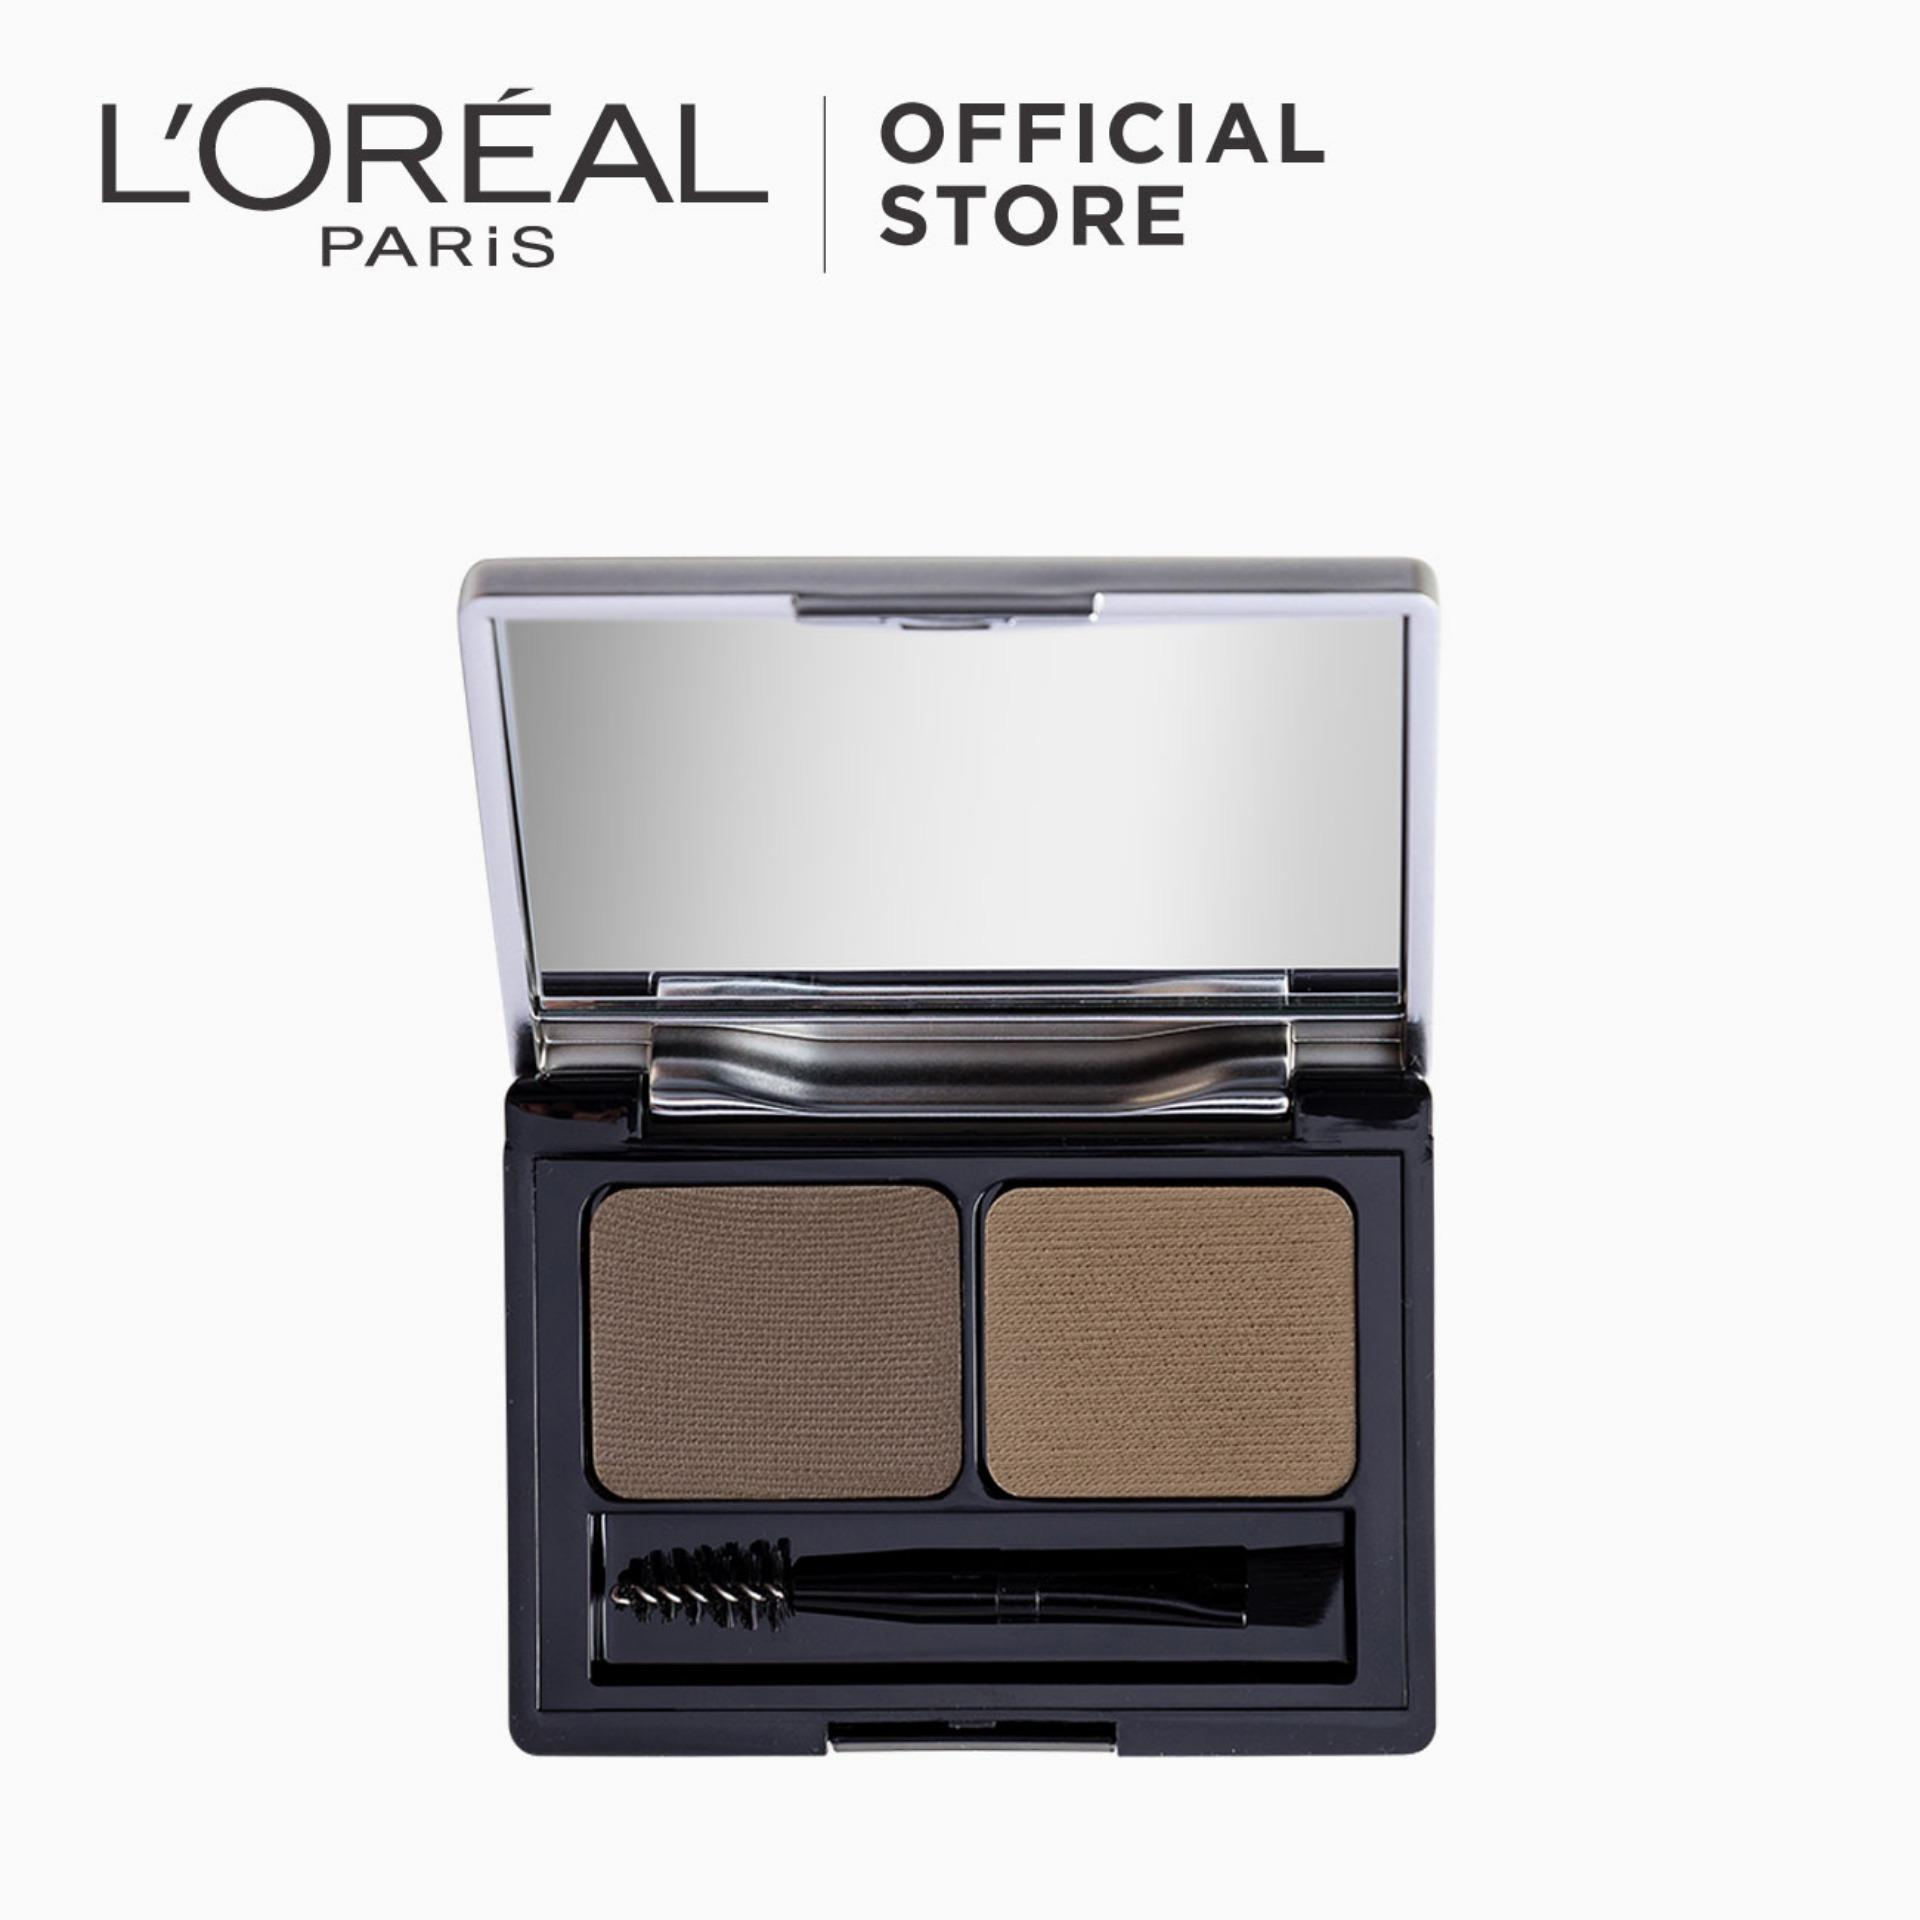 Genius Kit Shaping Eyebrow Palette - Light Brown 01 by LOréal Paris Brow Artist Philippines